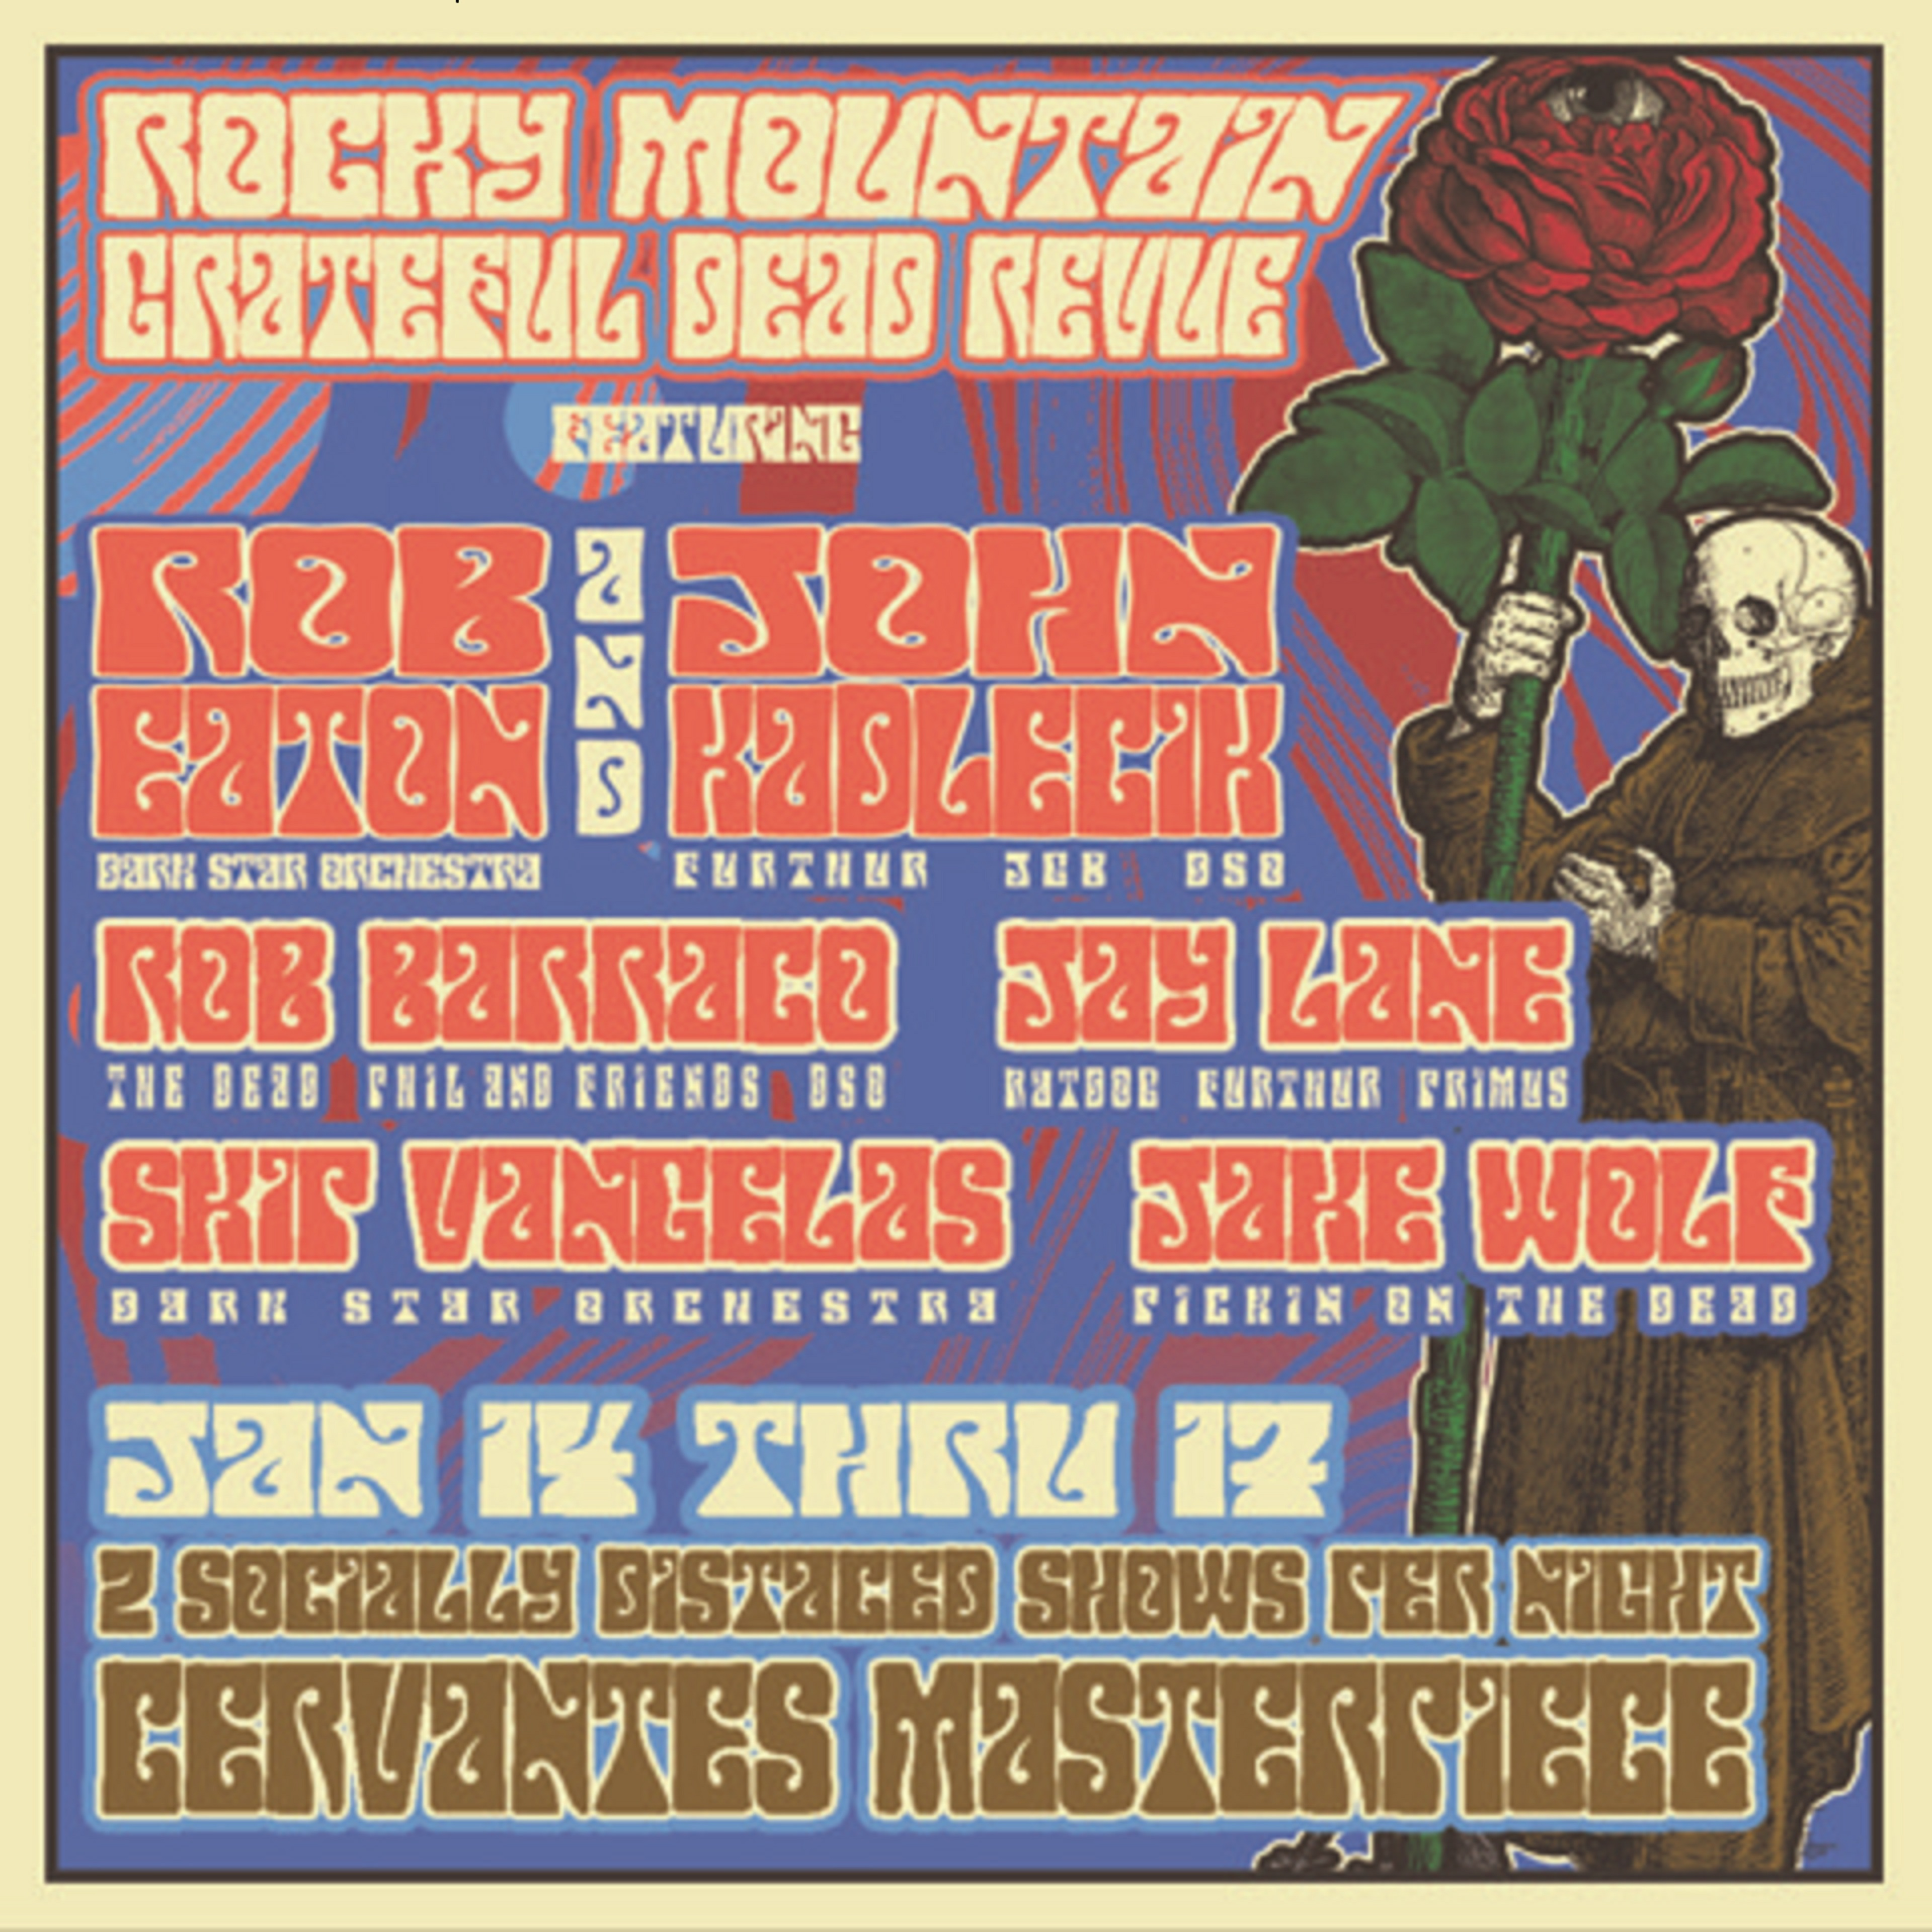 Rocky Mountain Grateful Dead Revue: John Kadlecik Joins DSO Alumni in Denver Jan 14-17